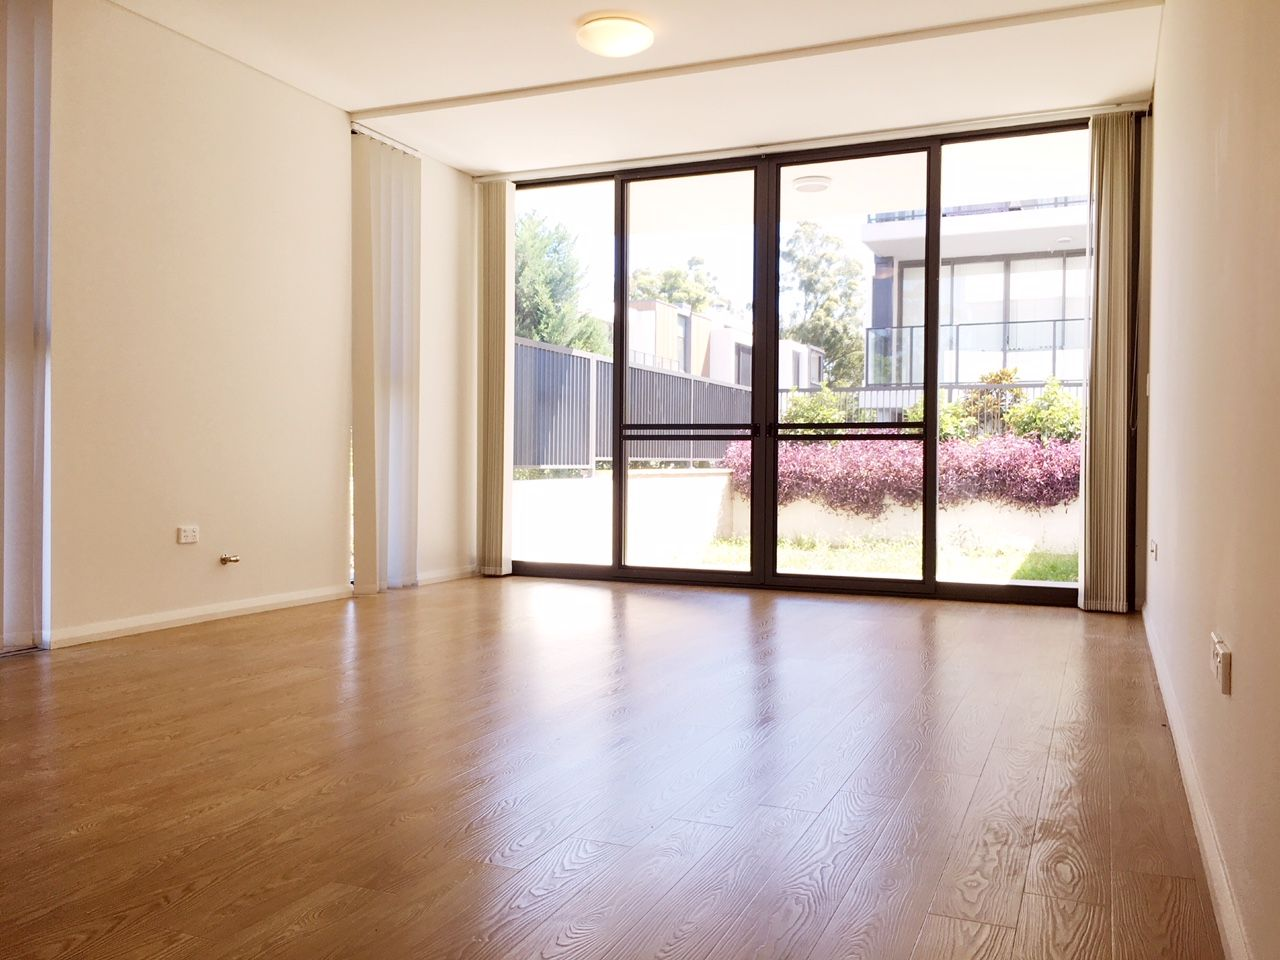 D101/1-9 Allengrove Crescent, North Ryde NSW 2113, Image 0